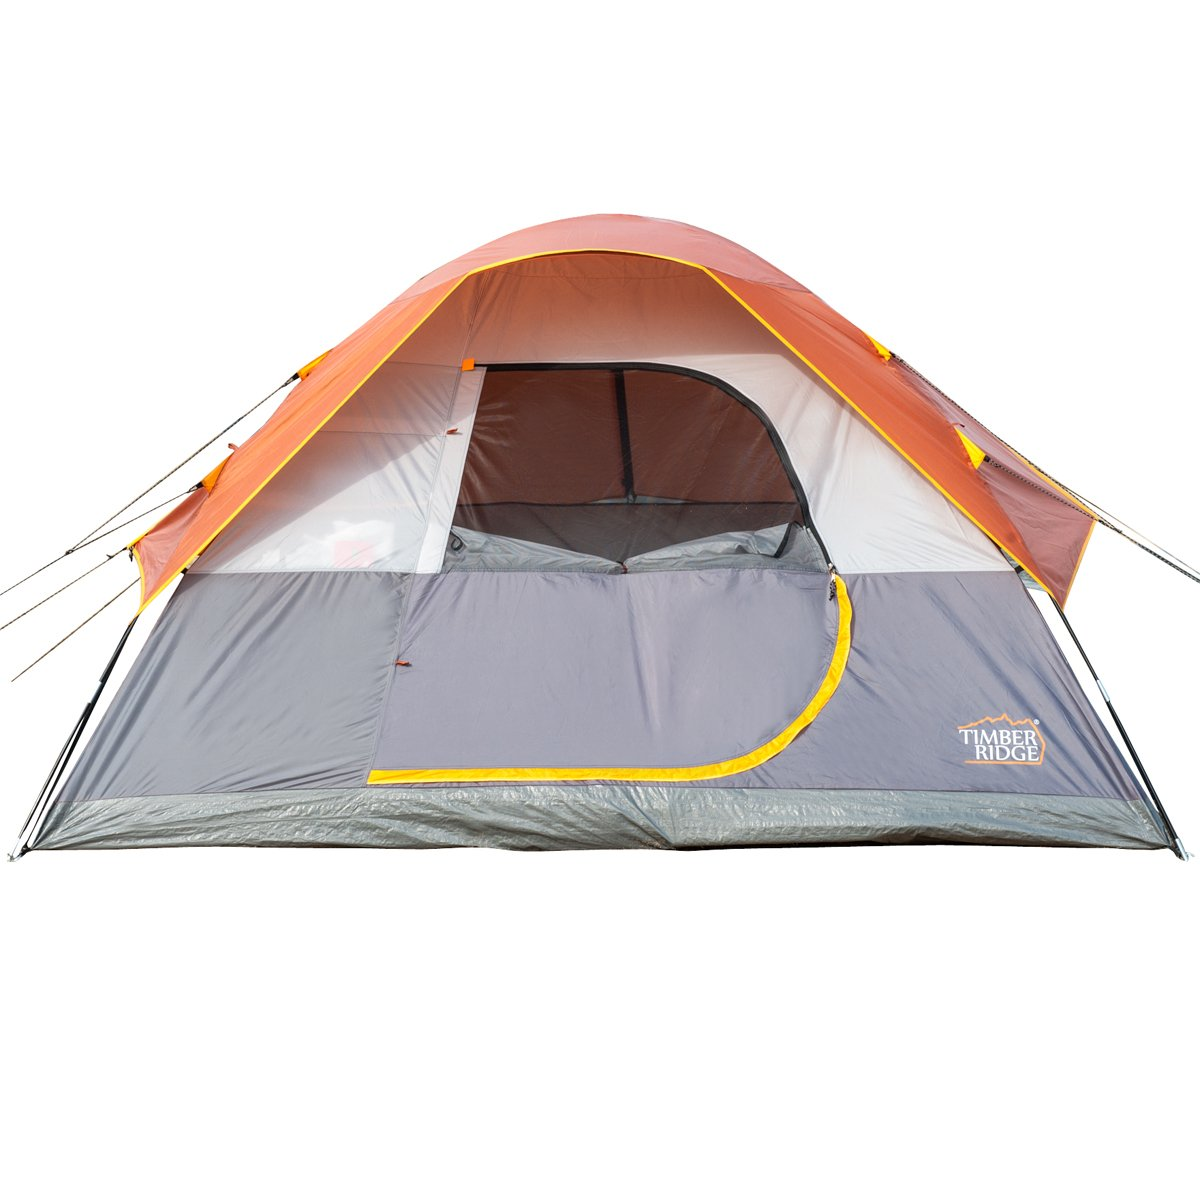 Motheru0027s Day 50% off on Timber Ridge 6 Person Family C&ing Tent D-Shape Door 3 Seasons $72.99 + FS  sc 1 st  CNET & Timber Ridge 6 Person Family Camping Tent - Forums - CNET